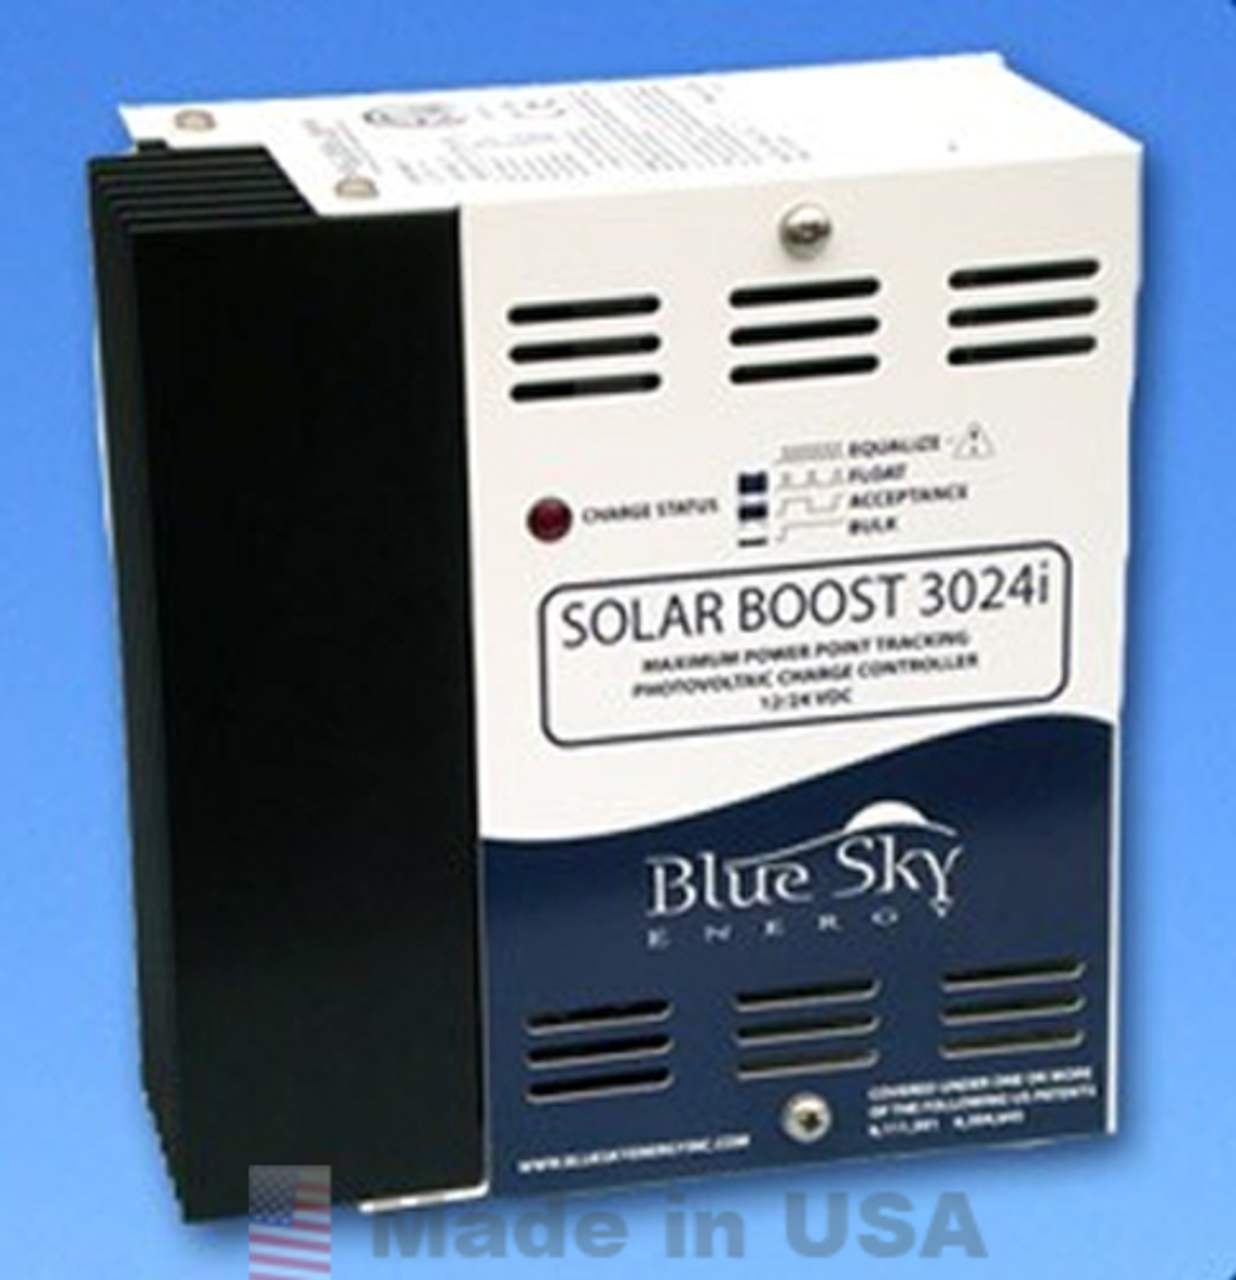 Blue Sky Solar Boost 3024iL Solar Charge Controller, No Display